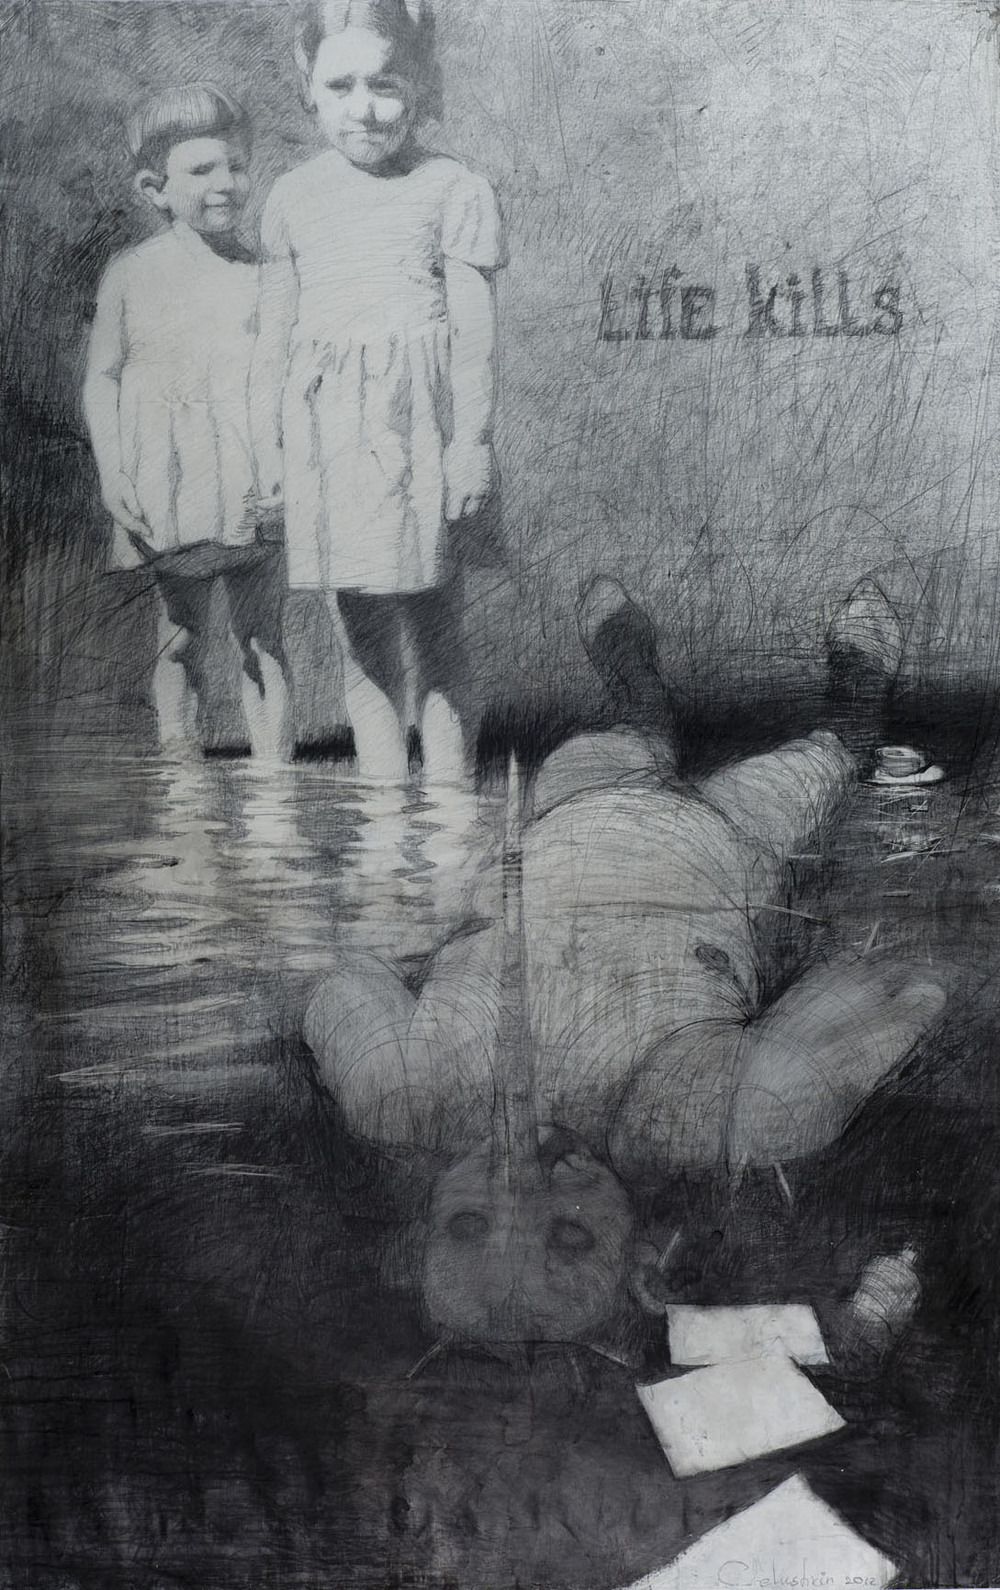 Kirill Chelushkin, Untitled-Life Kills , 2012, 210 x 139 cm - Courtesy the artist and Rabouan Moussion